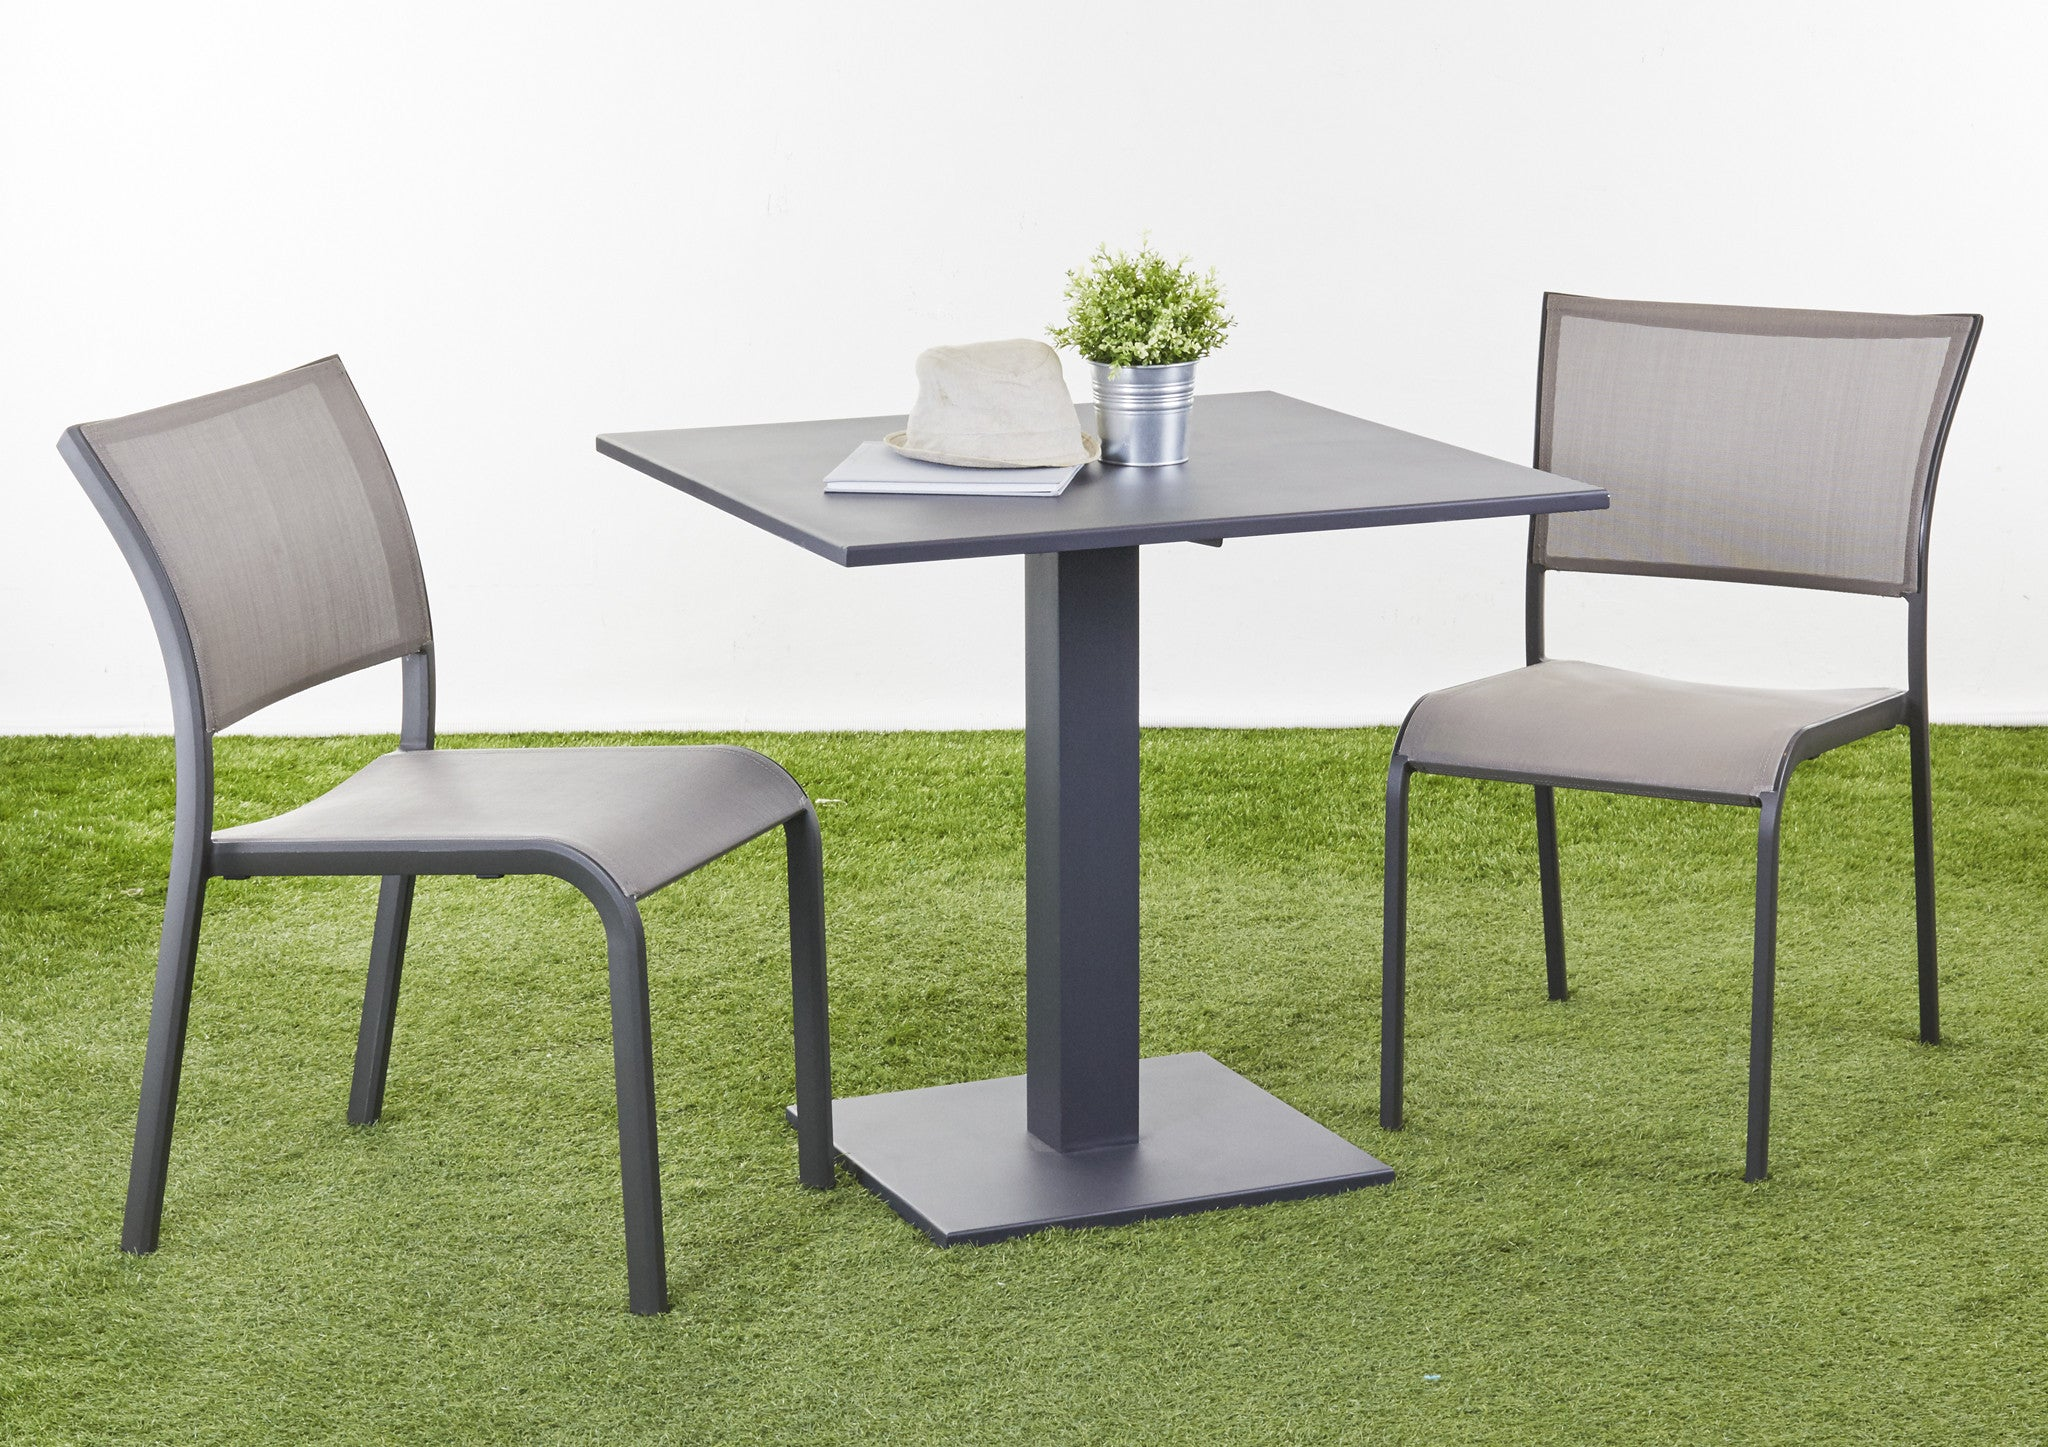 ZEUS VOLOS 2 SEATER 4 SEATER DINING SET Boulevard Outdoor